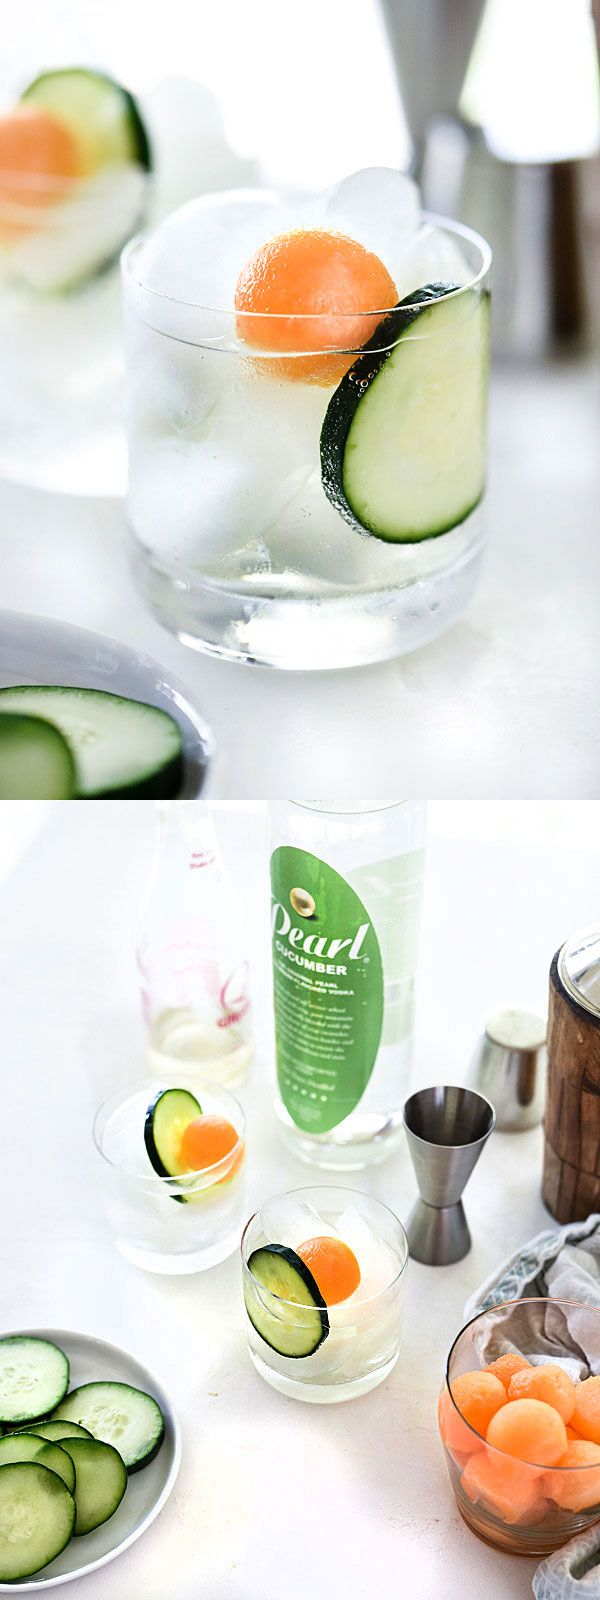 This fresh and light cocktail is the best for brunch or summer sipping | foodiecrush.com